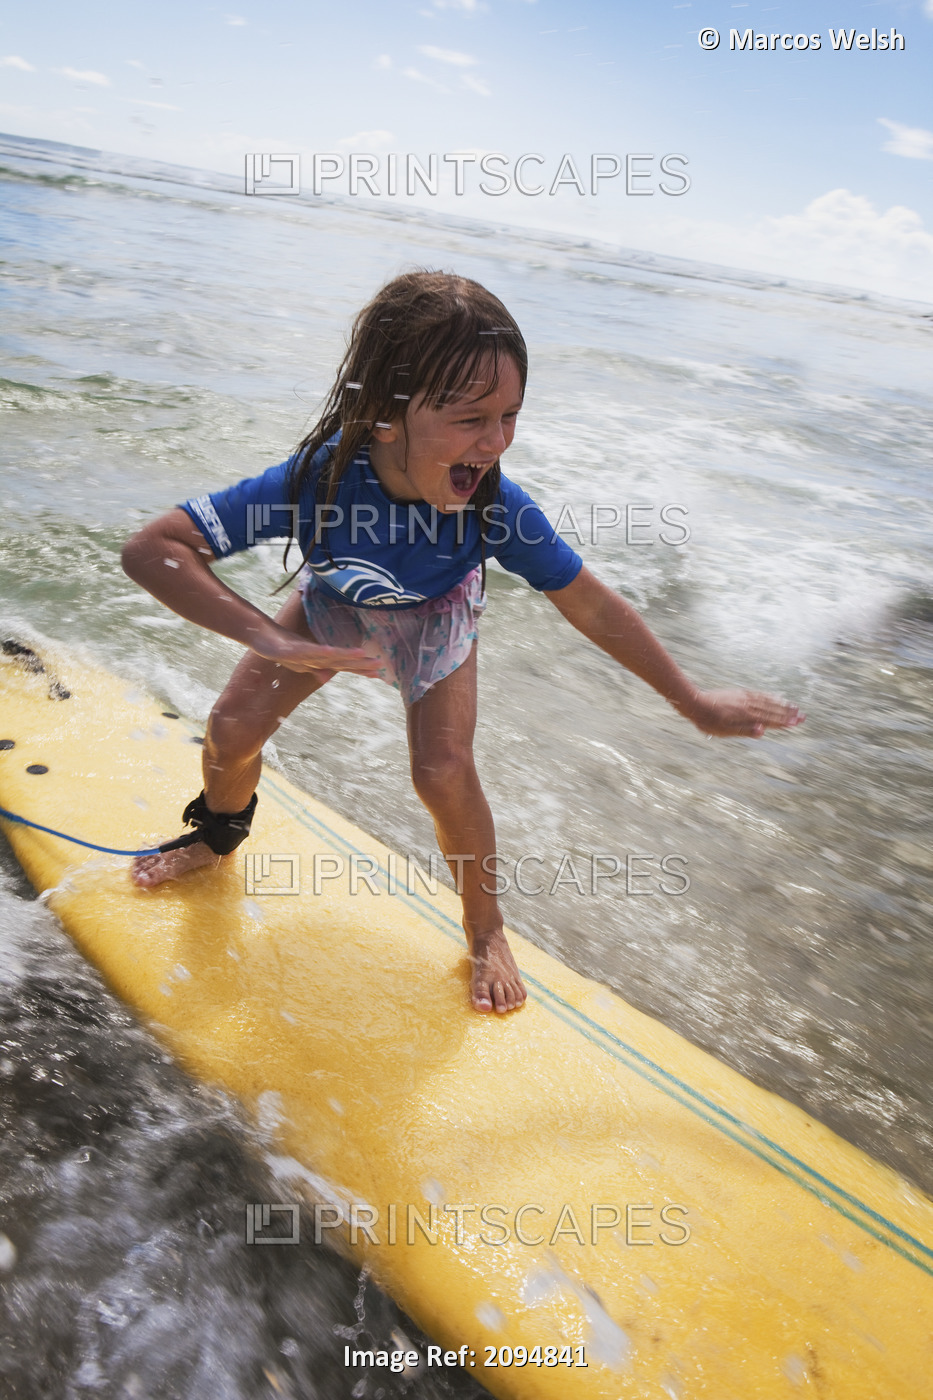 A young girl on a yellow surfboard;Gold coast queensland australia